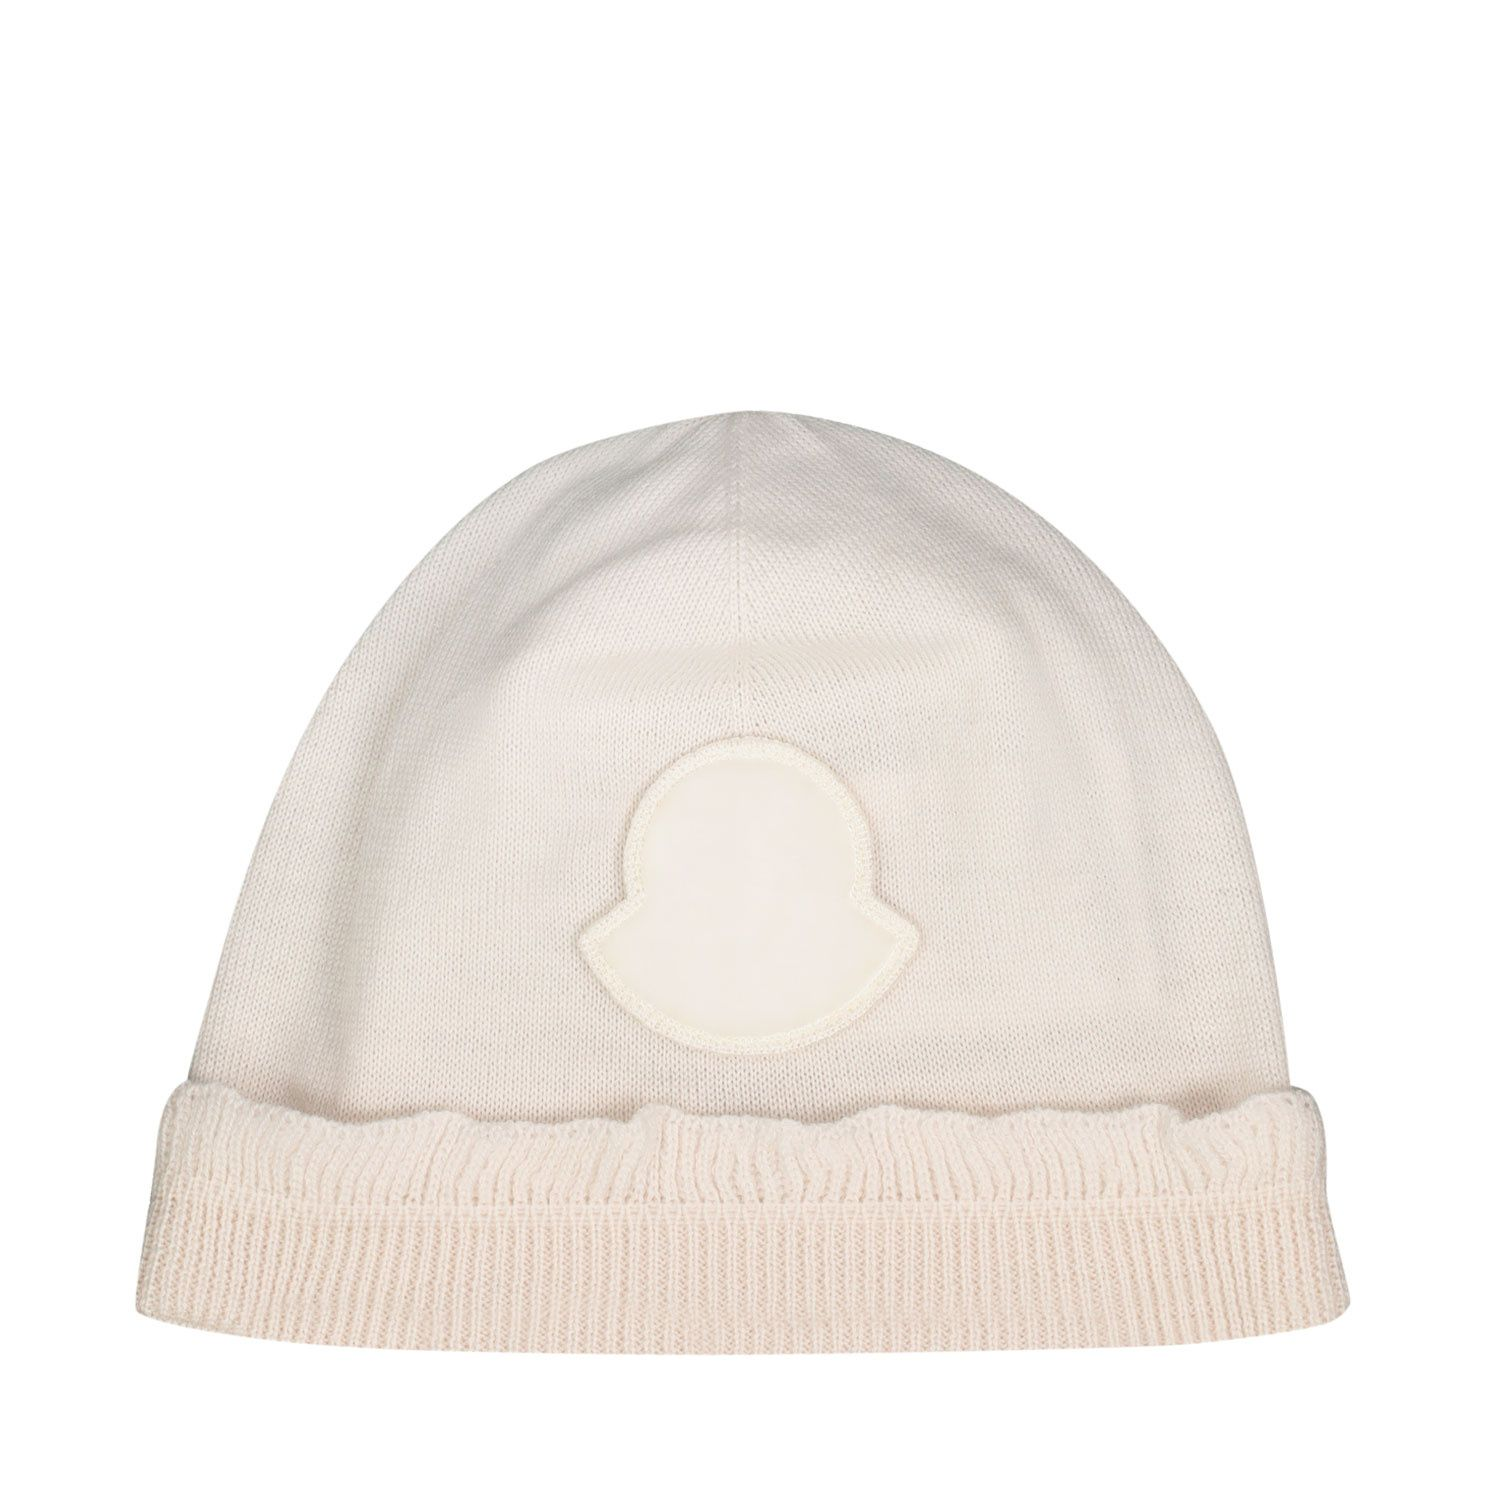 Picture of Moncler 9Z70410 baby hat ecru